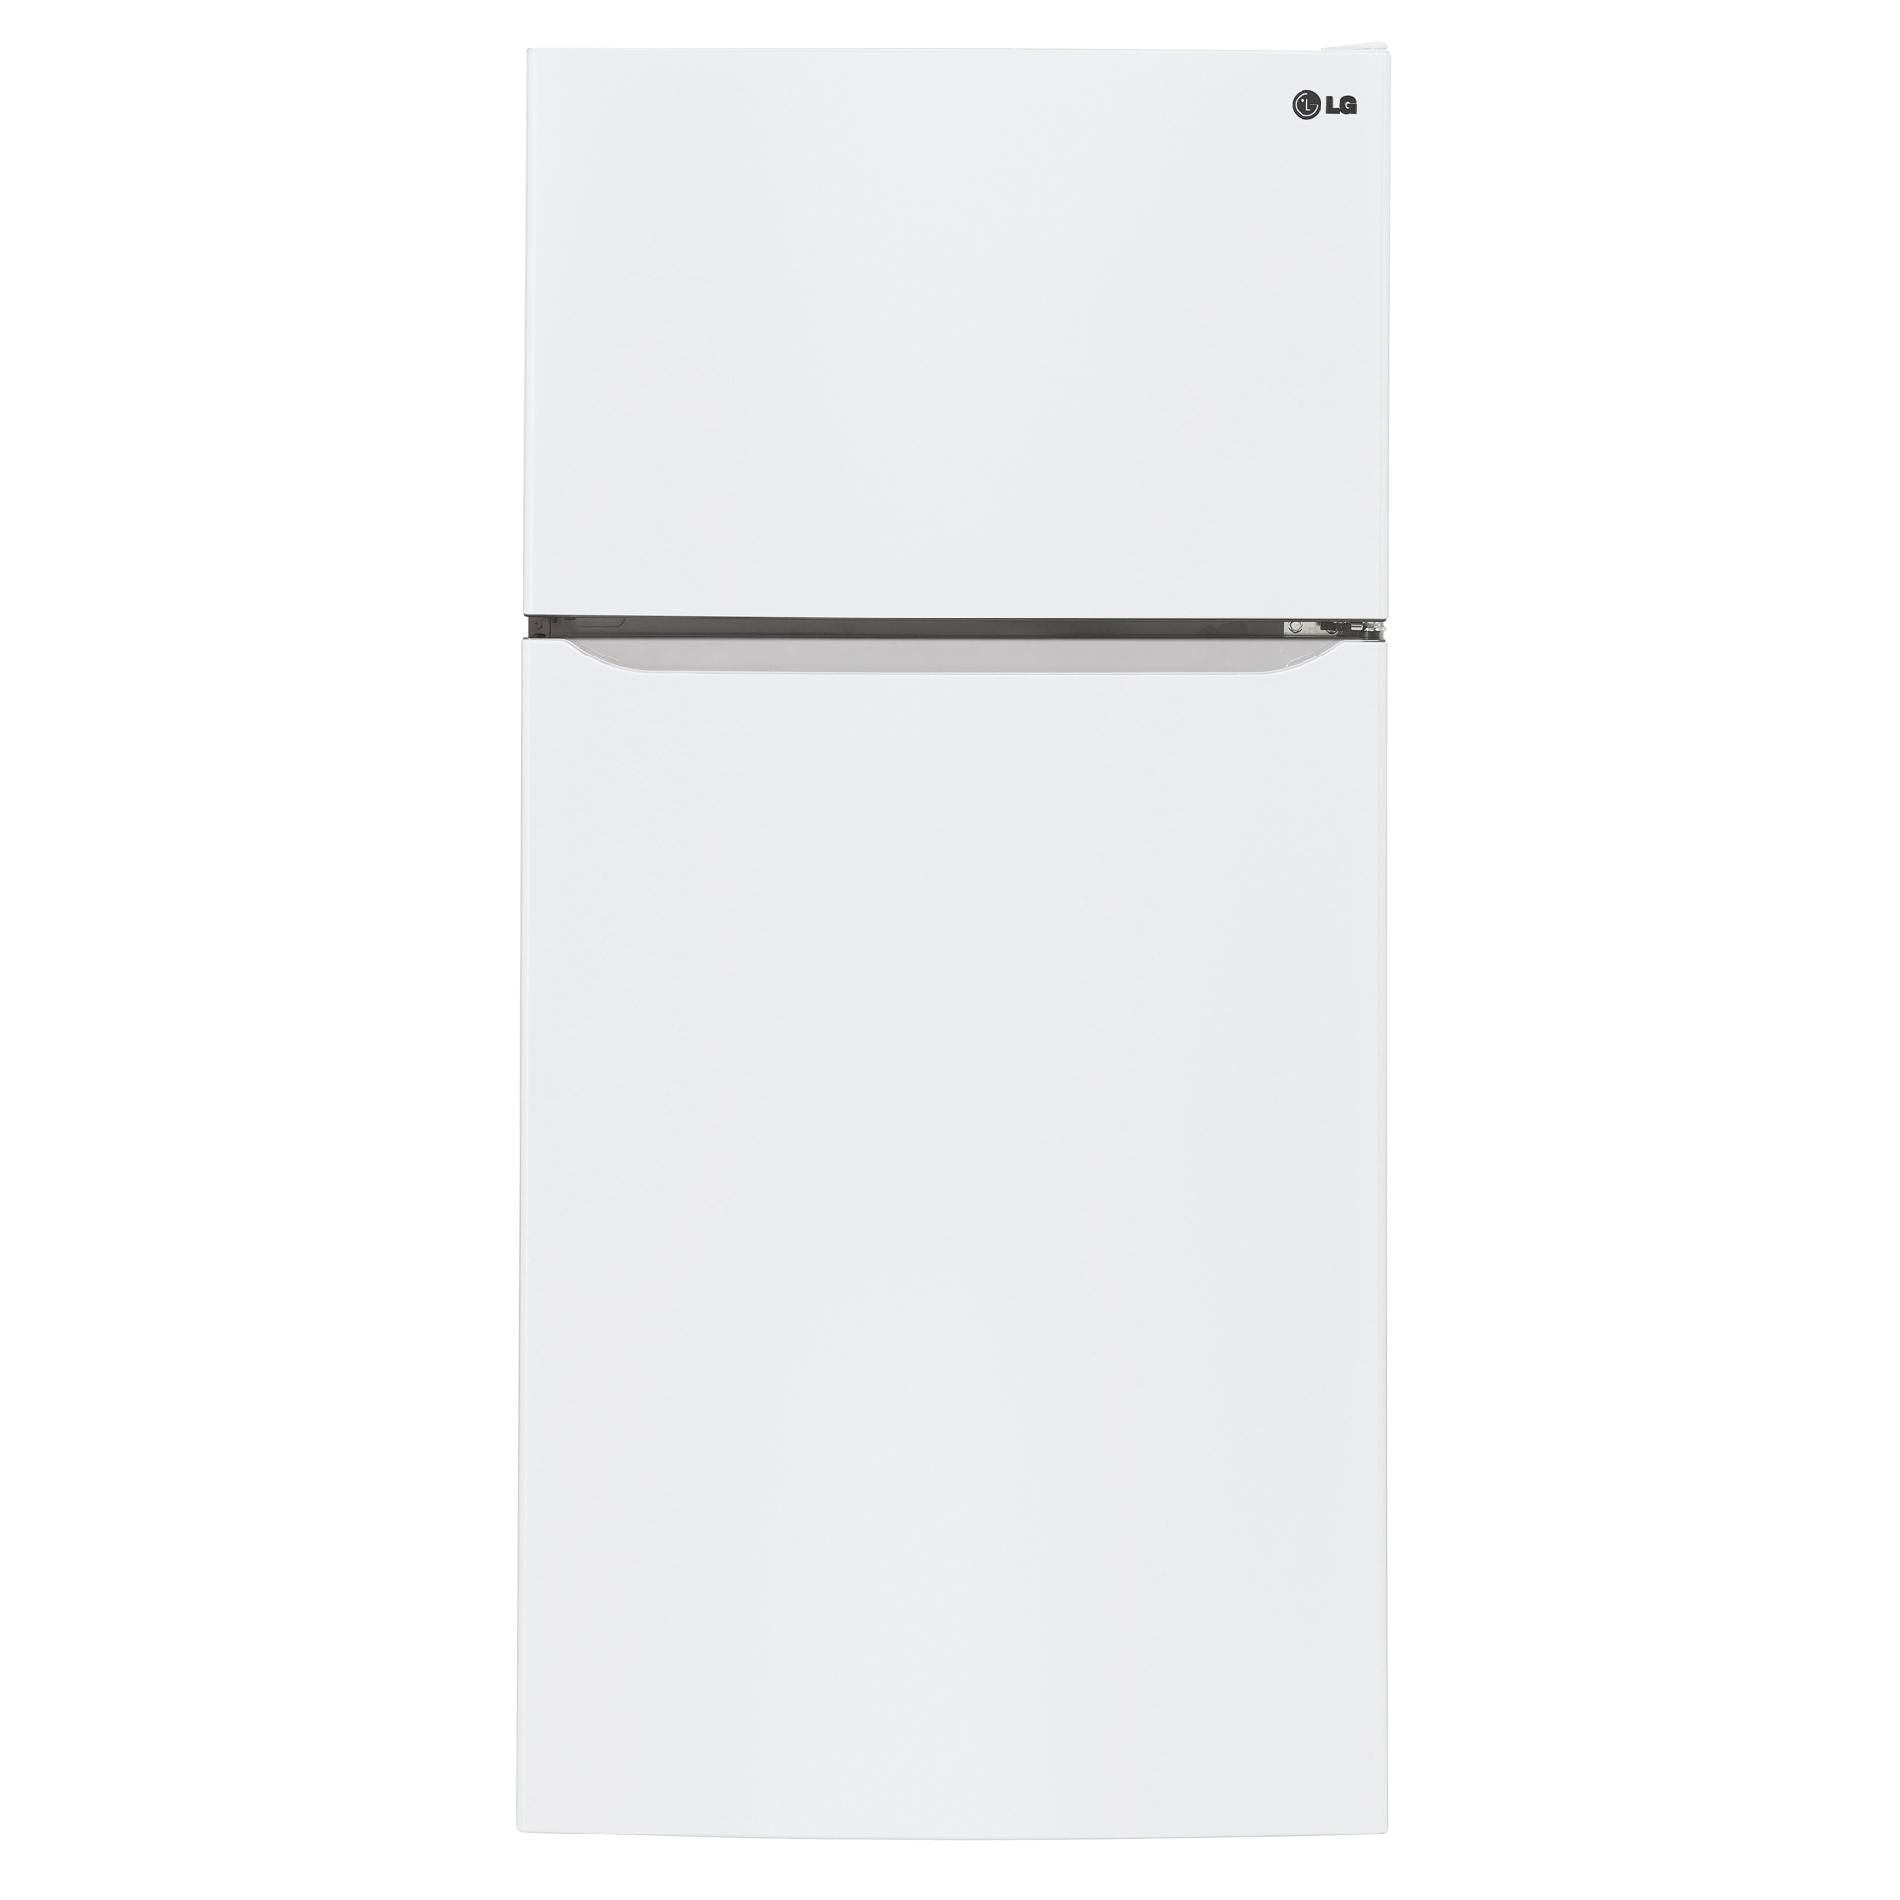 Lg Ltcs24223w 23 8 Cu Ft Top Freezer Refrigerator W Ice Maker White Top Mount Refrigerator Refrigerator Top Freezer Refrigerator